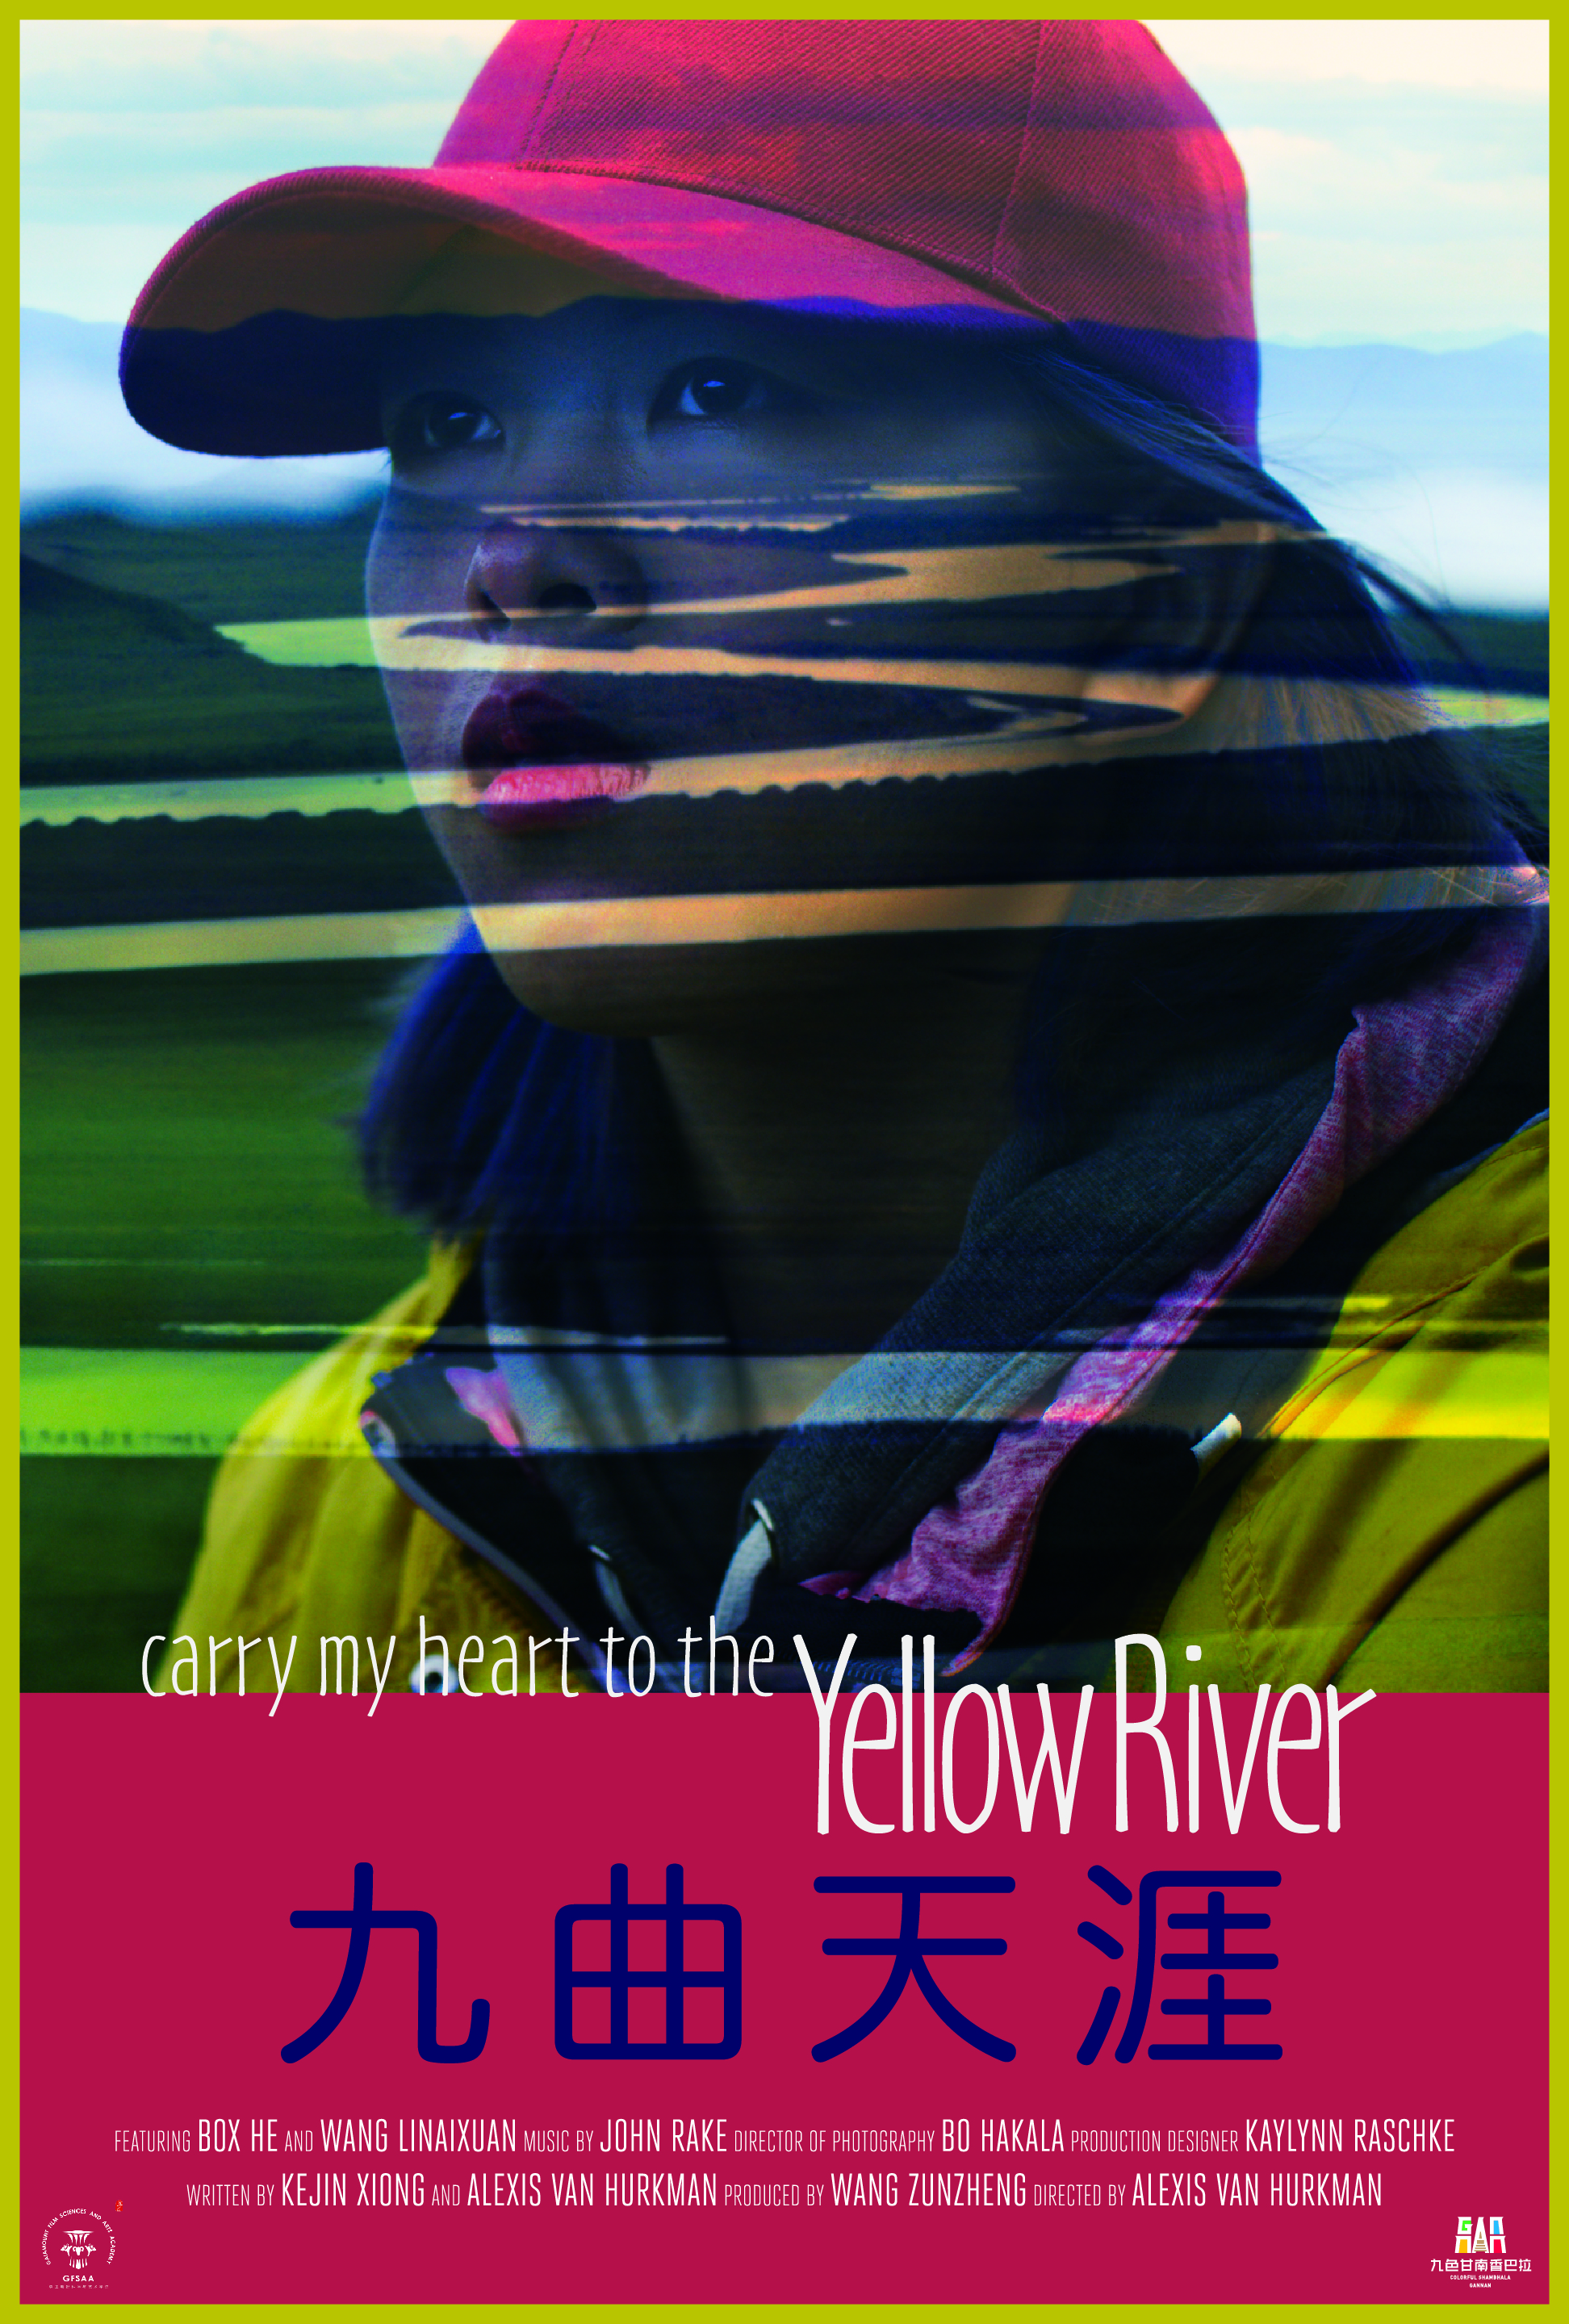 CarryMyHeartToTheYellowRiver_Poster.jpg